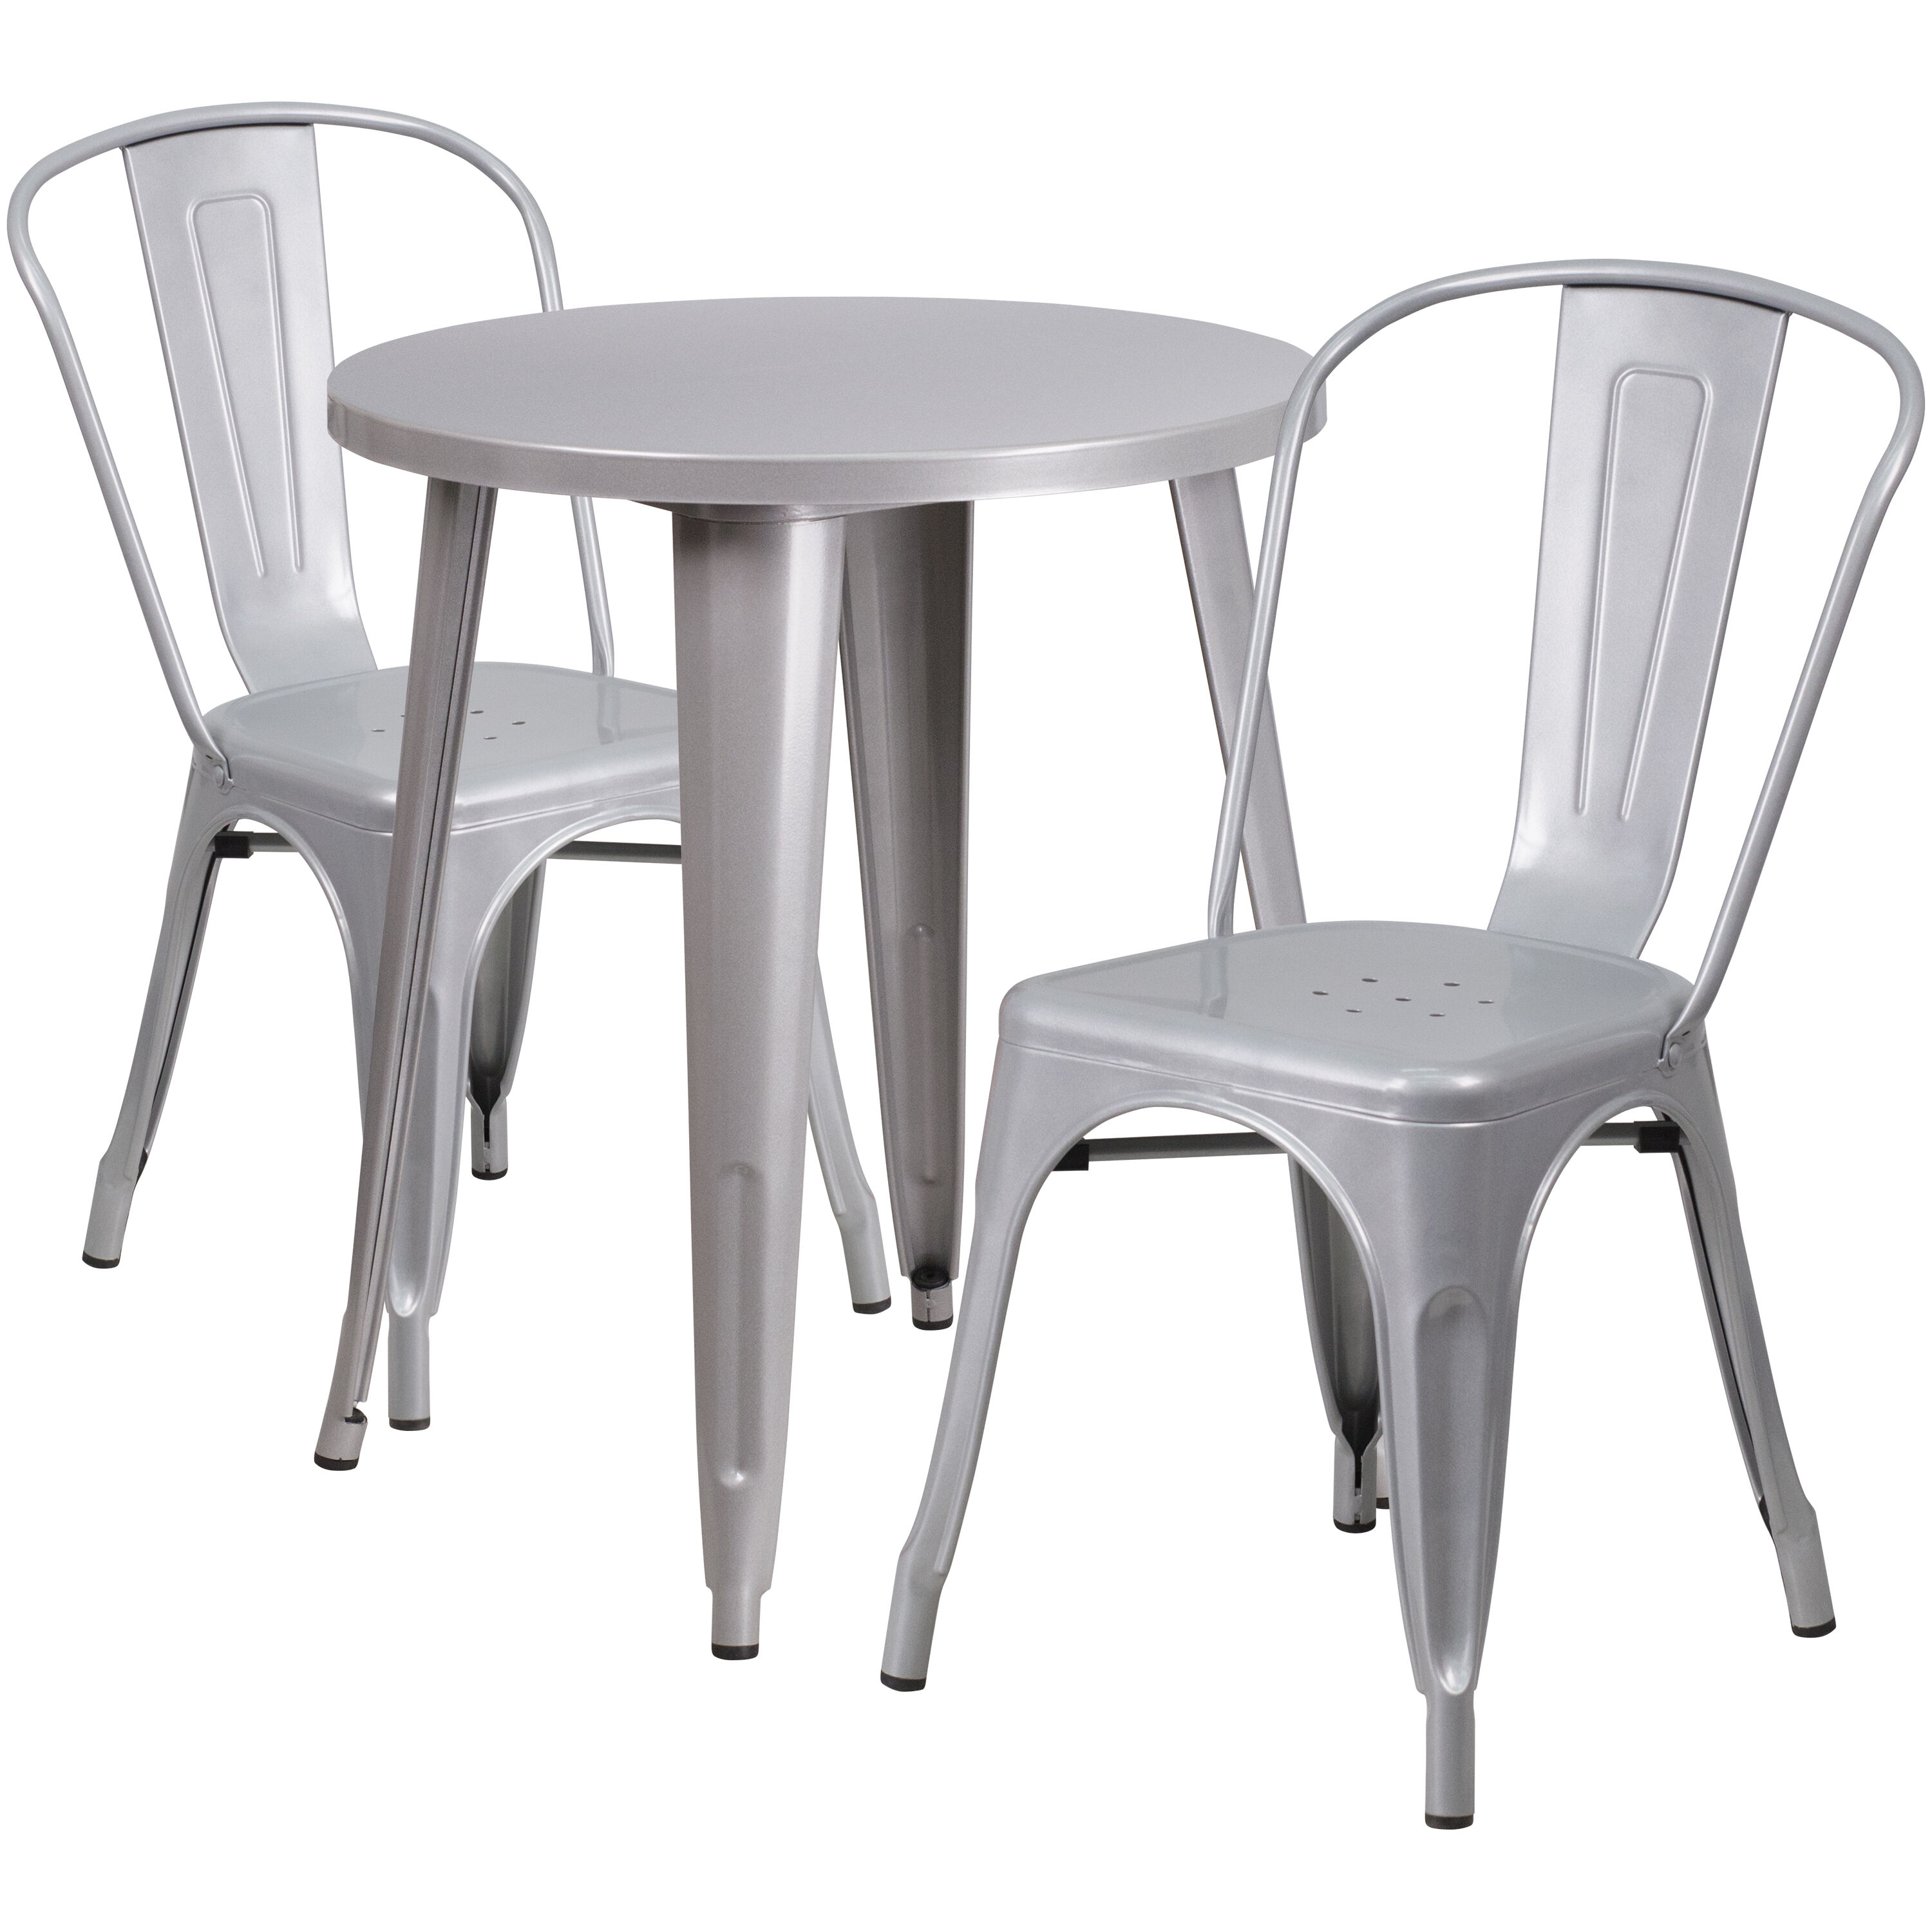 ... Our 24u0027u0027 Round Silver Metal Indoor Outdoor Table Set With 2 Cafe Chairs